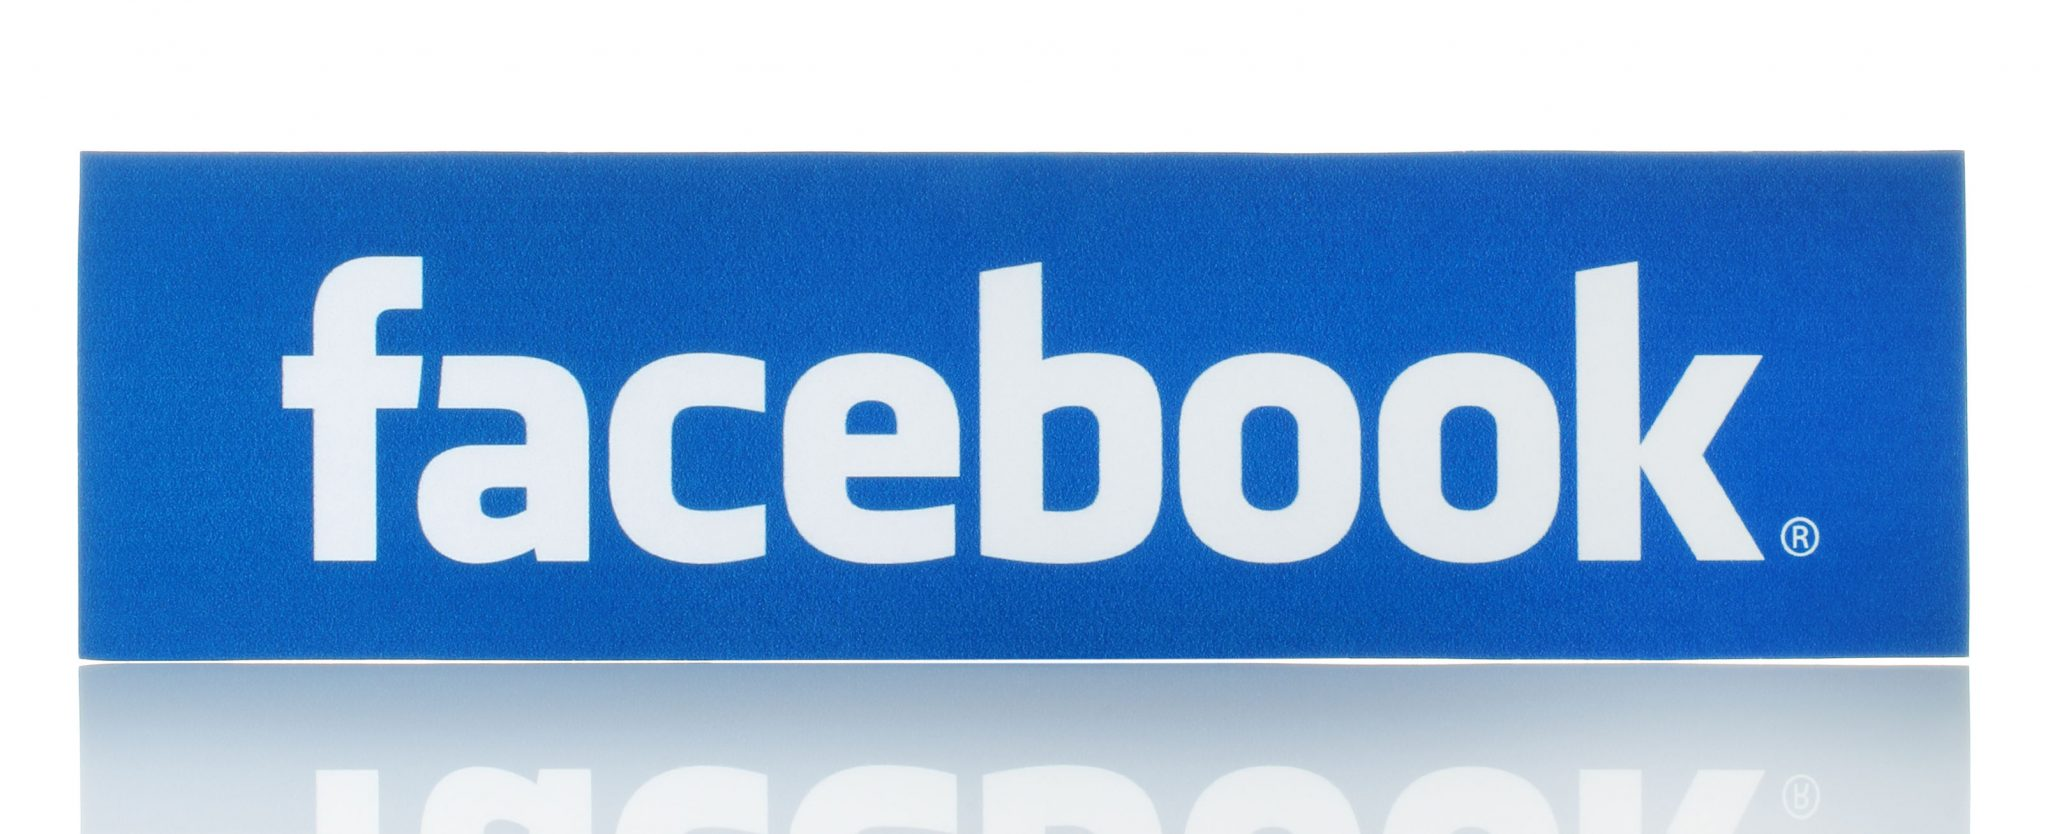 37759329 - kiev, ukraine - february 19, 2015:facebook logo sign printed on paper and placed on white background. facebook is a well-known social networking service.